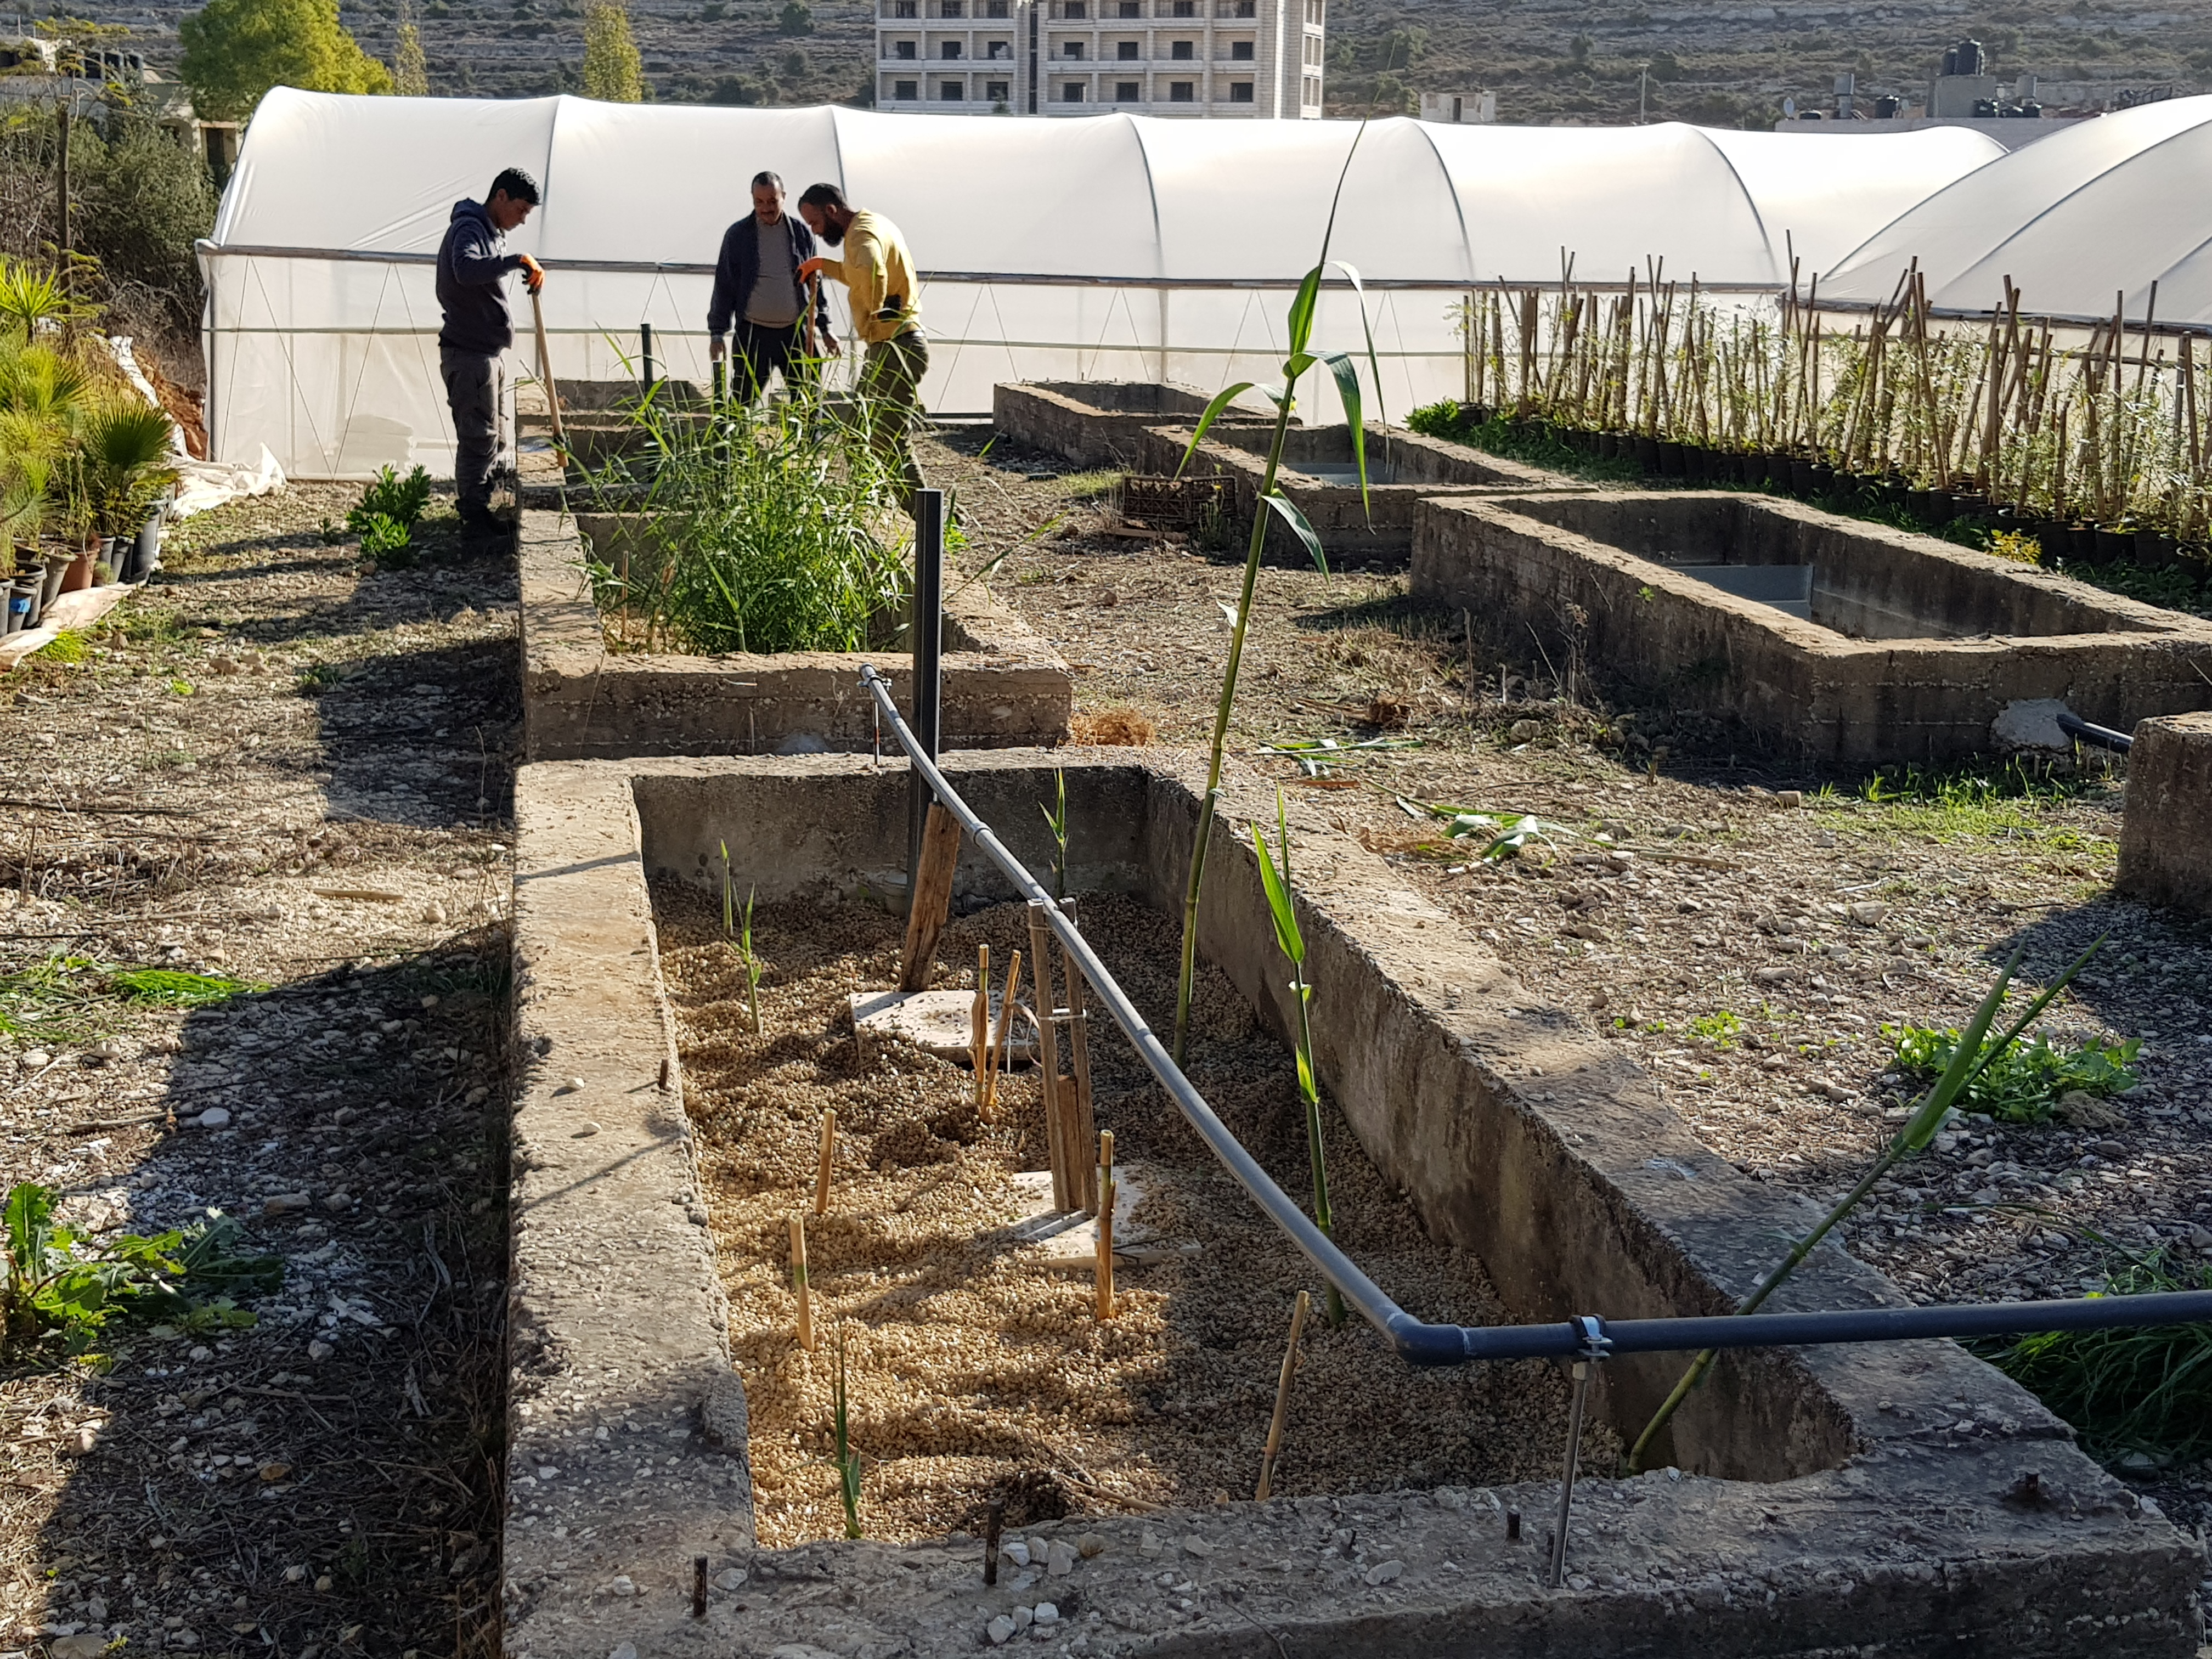 Sustainable Industrial Wastewater Management in Palestine